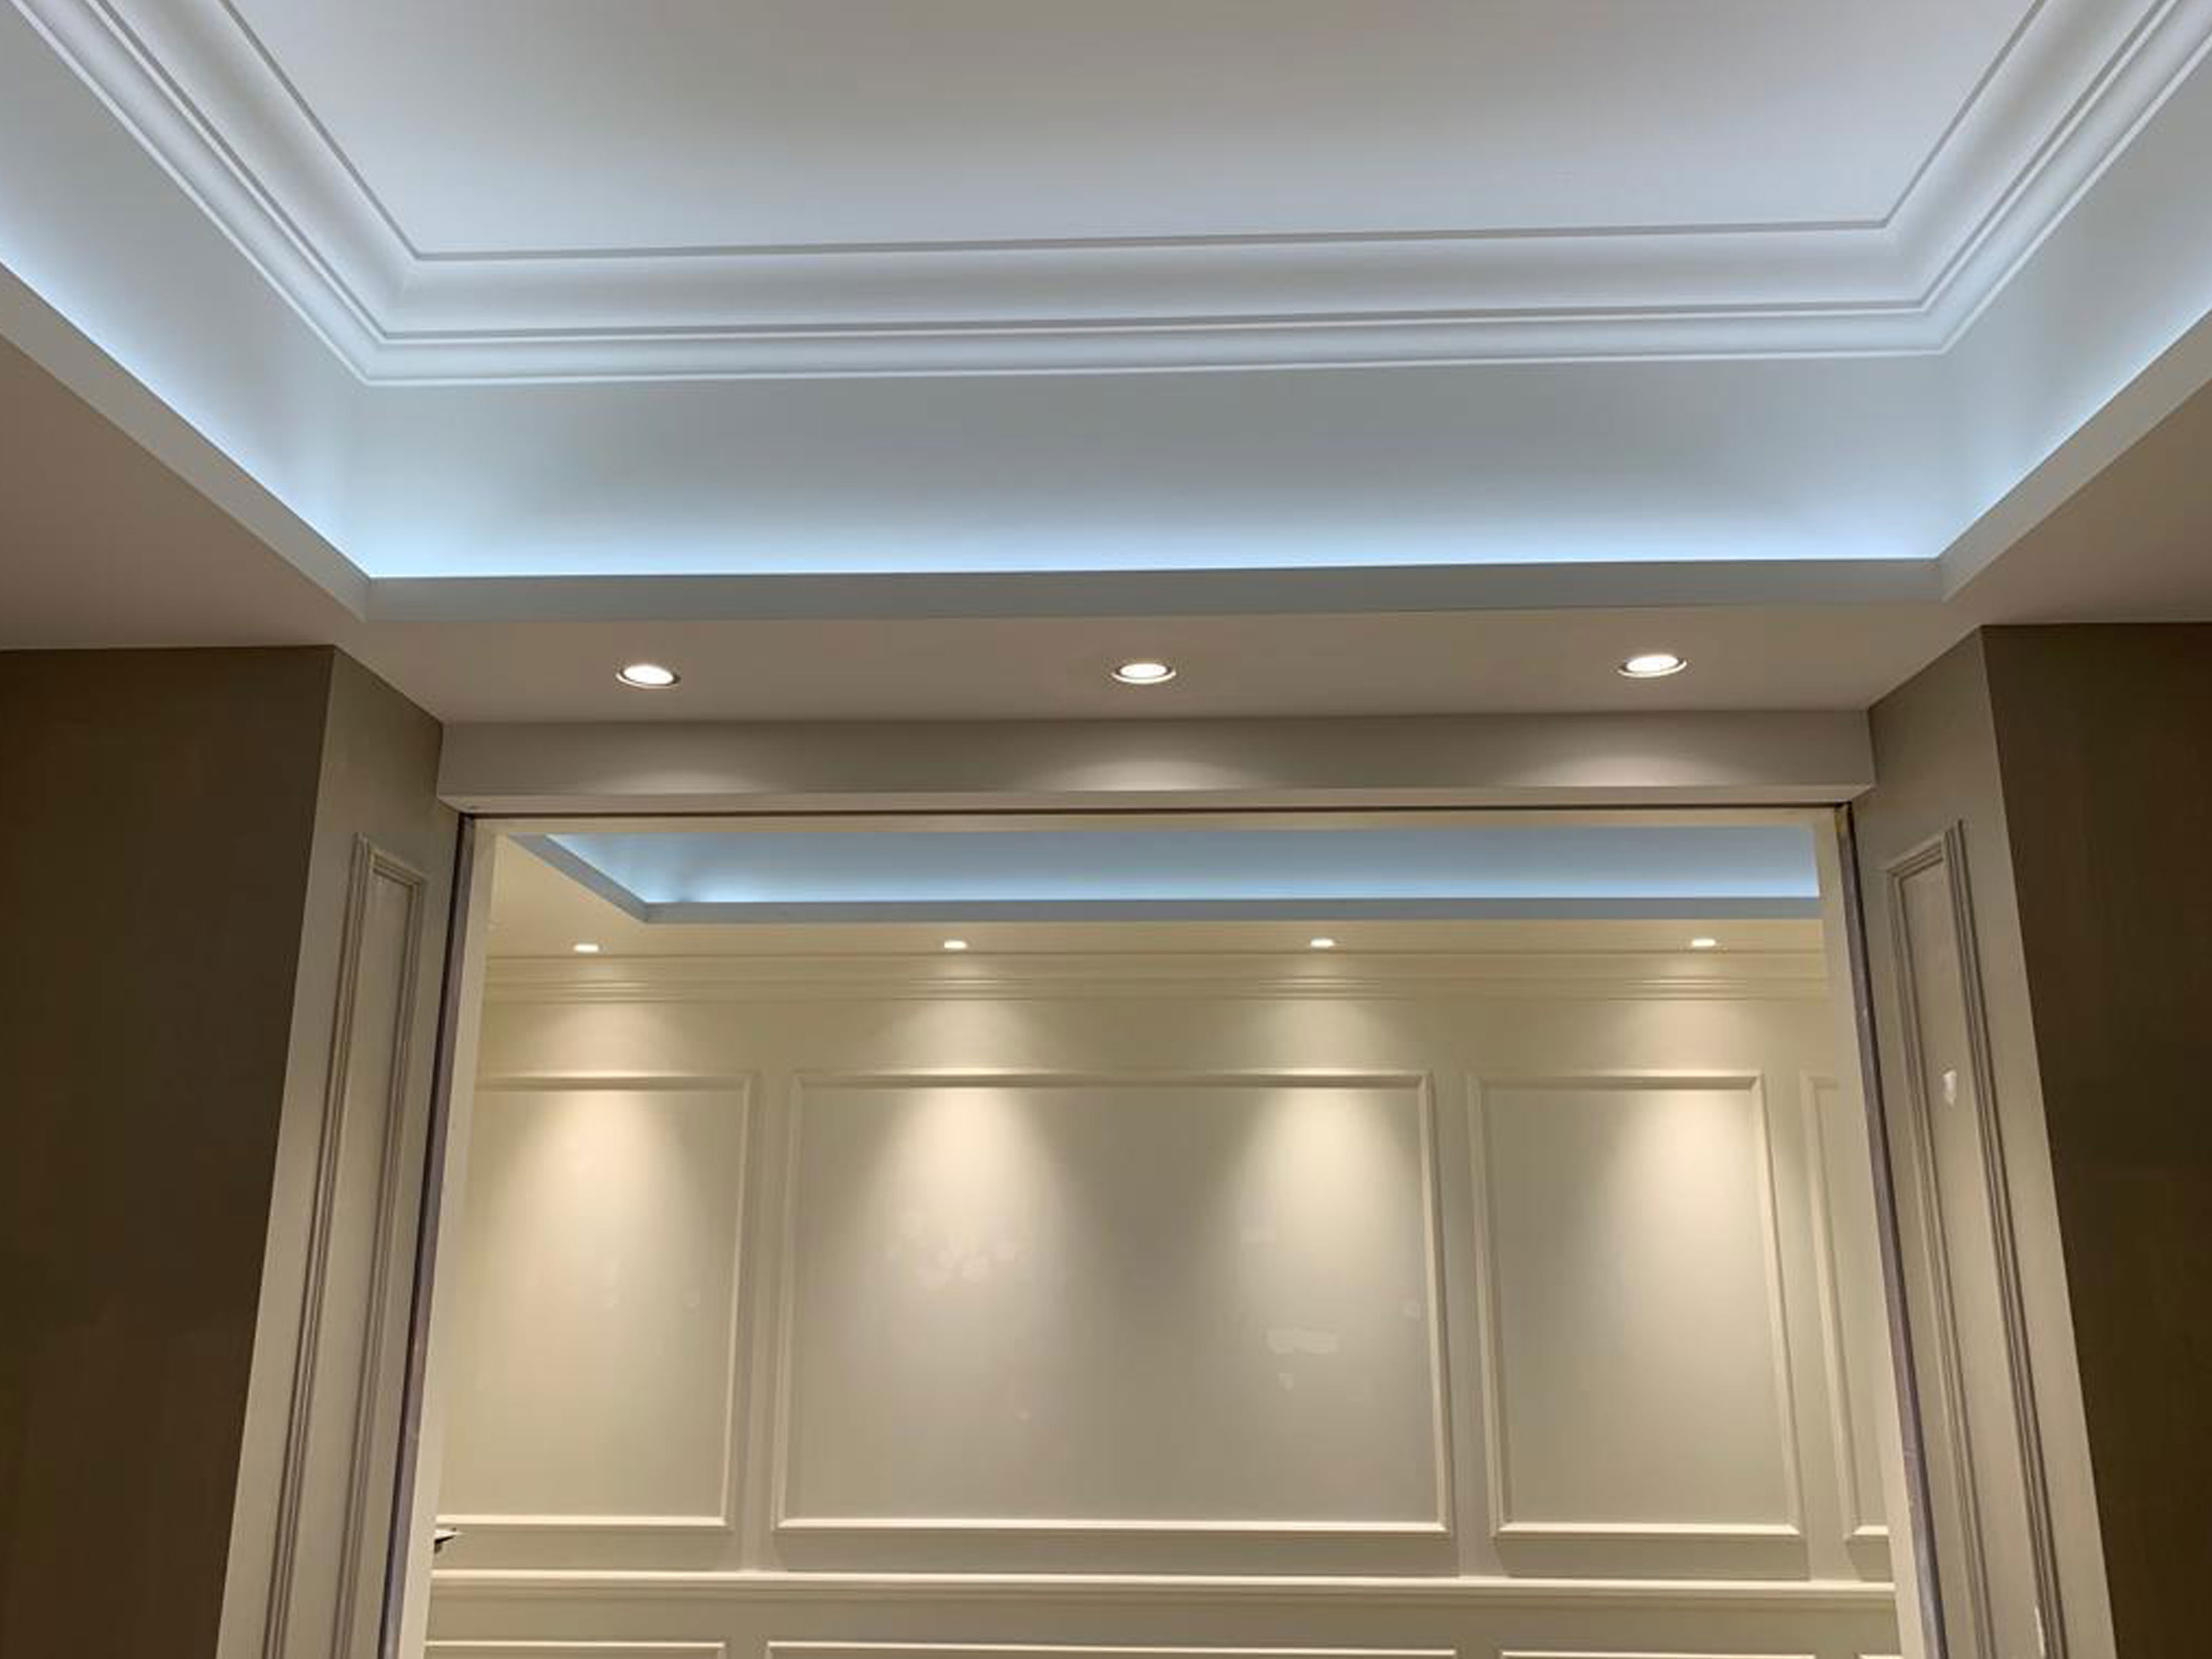 Penhaligons completion HPS9 Plain Run Cornice